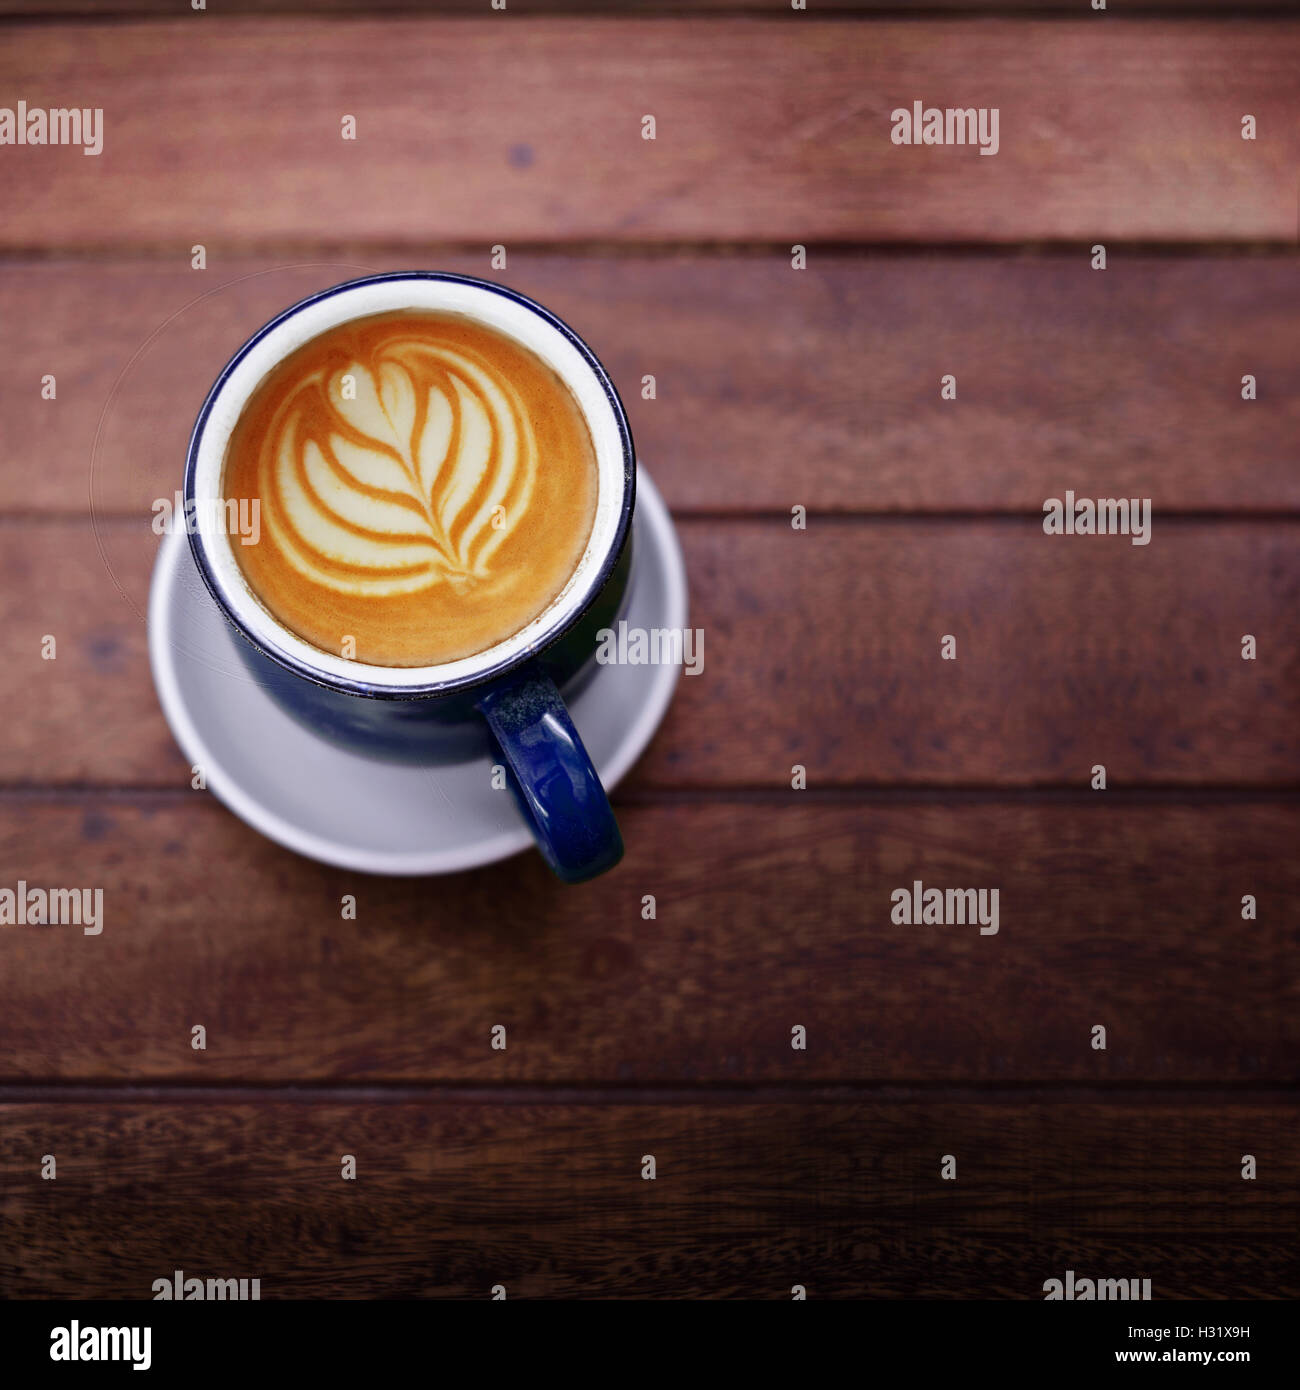 Cup of Coffee Latte on Wooden table with Natural light, selective focus on a cup Stock Photo